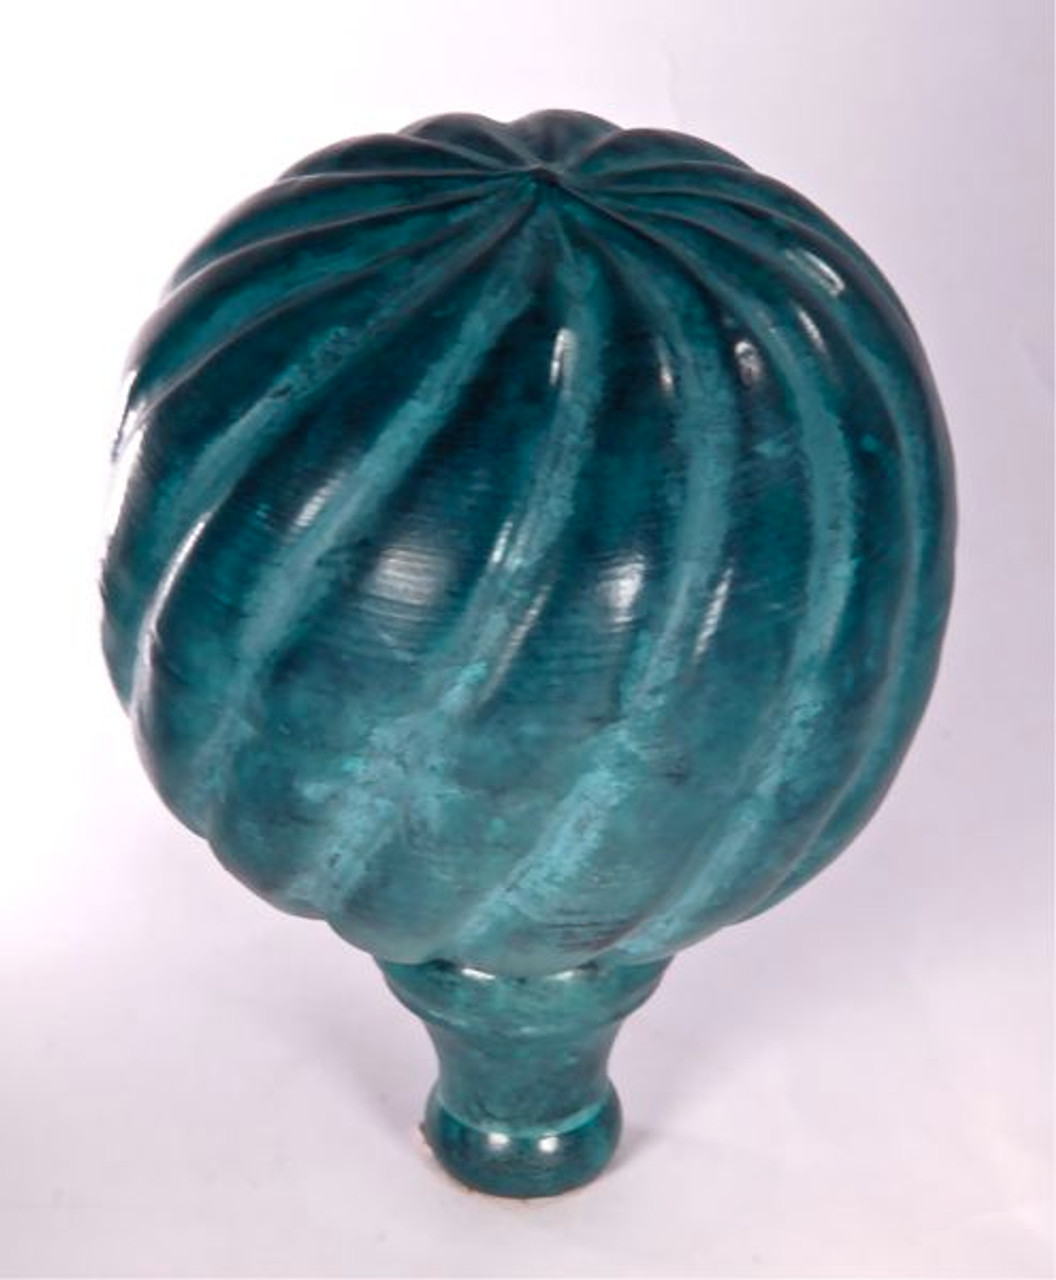 Finial - Small Parisian-Verdigris